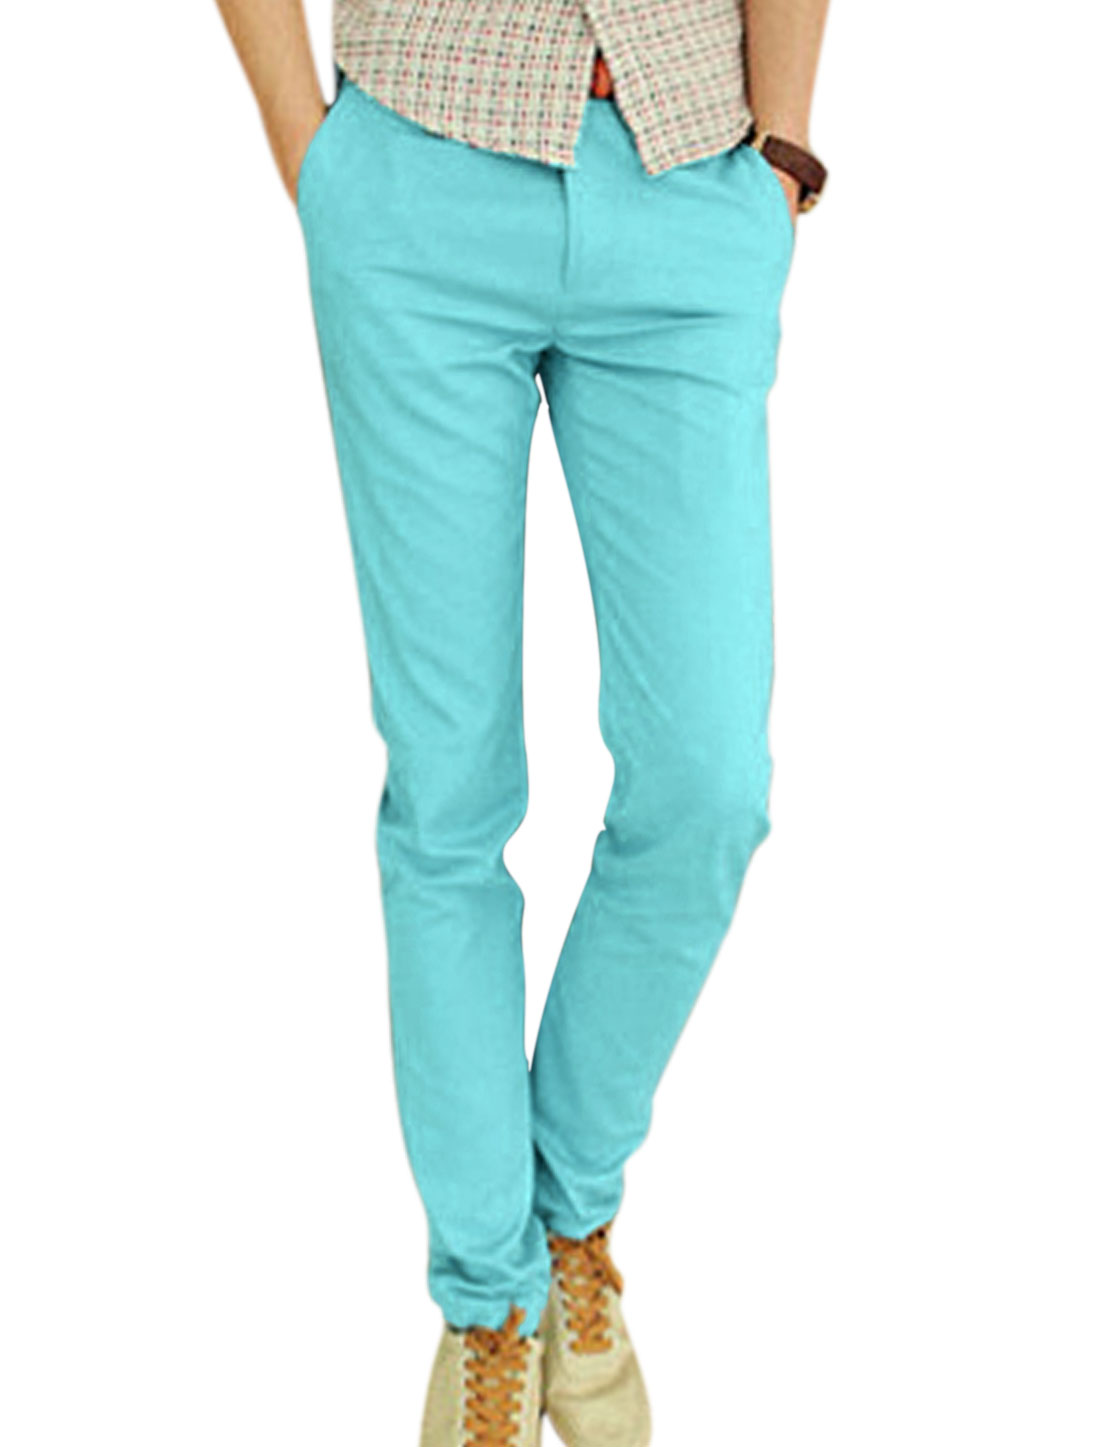 Men NEW Fashion Zipper Fly Fake Welt Pockets Leisure Pants Light Blue W30